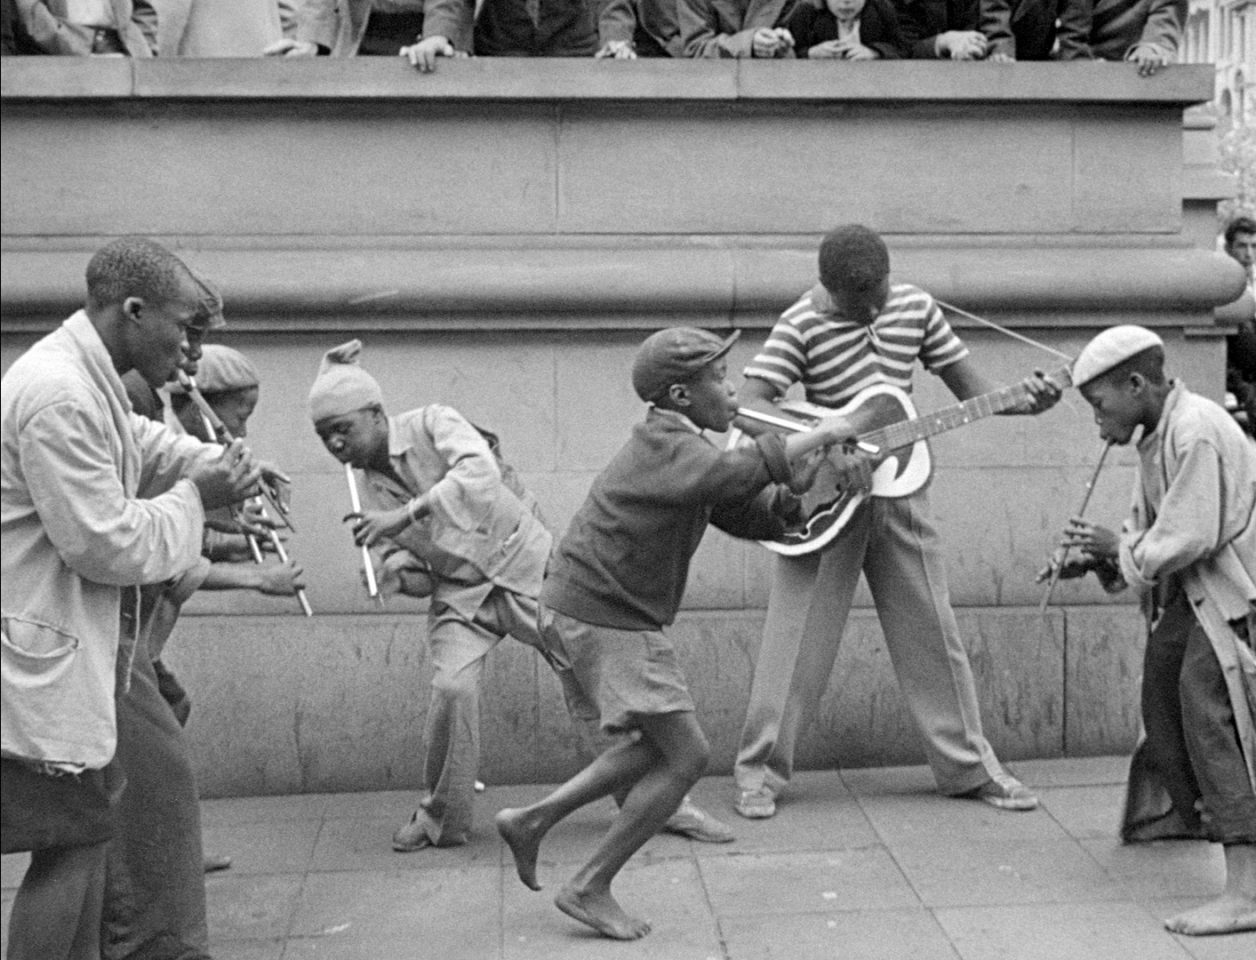 Penny Whistlers and Musicians on the street in the film COME BACK, AFRICA by Lionel Rogosin.